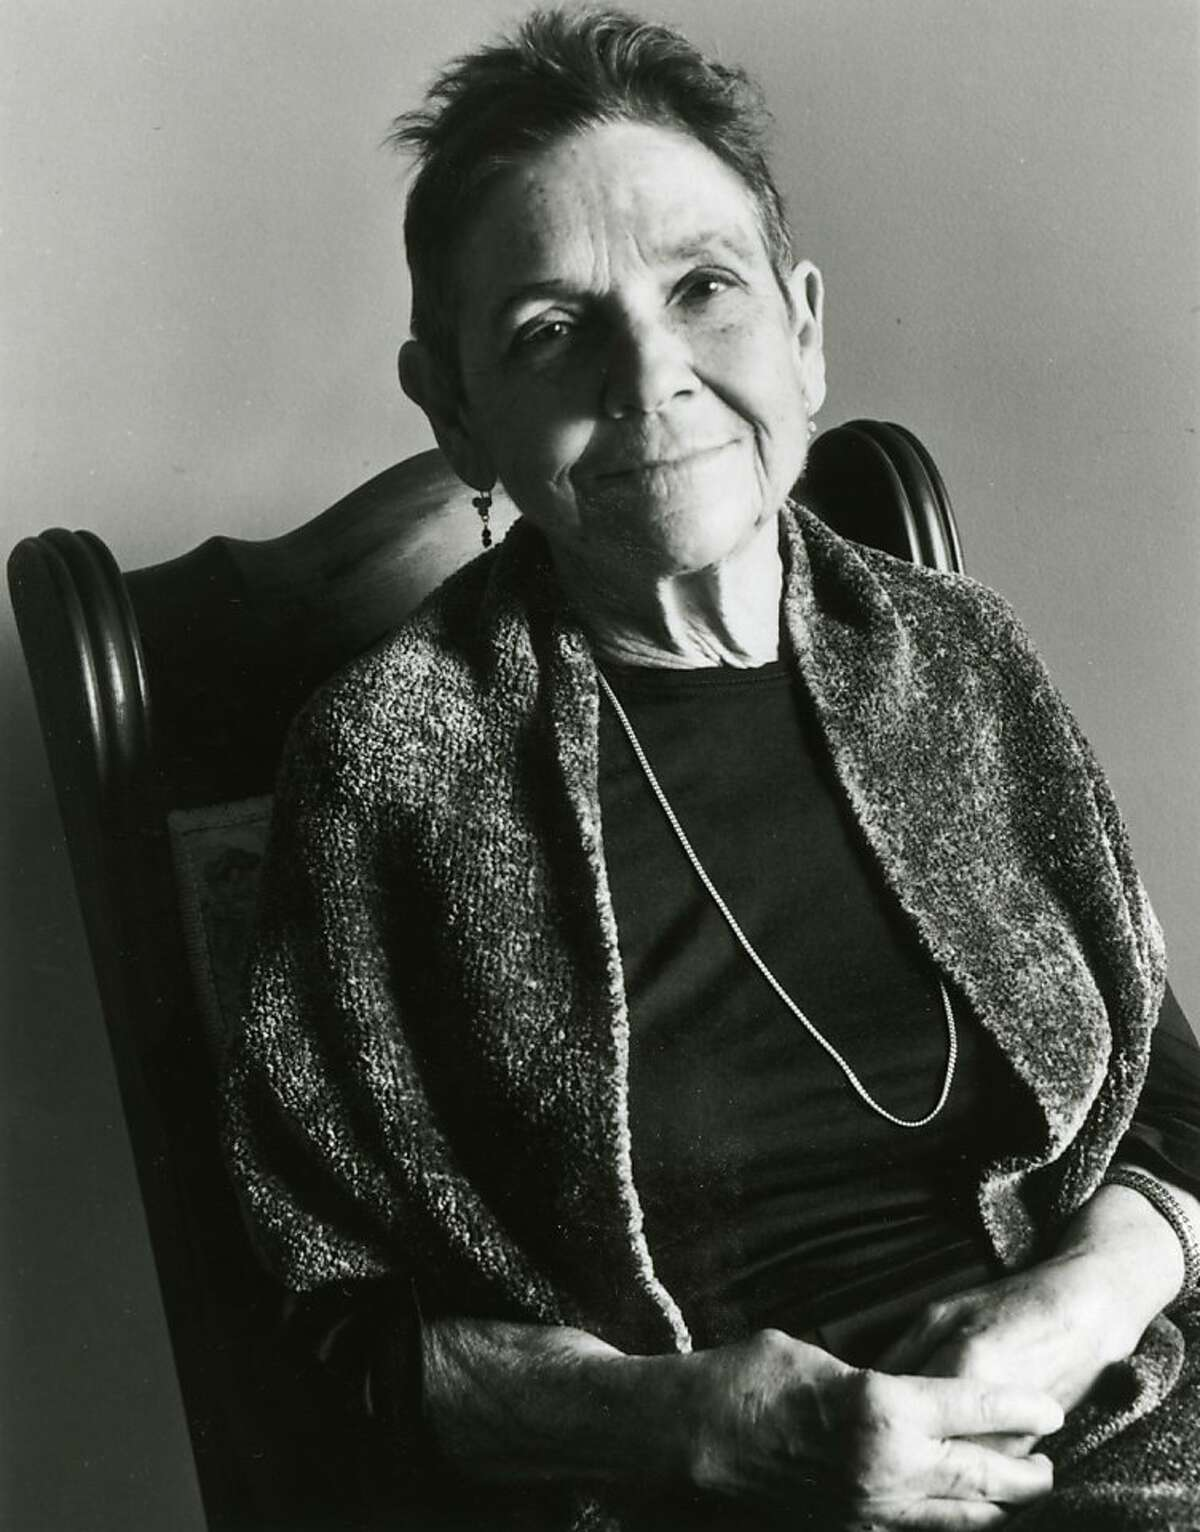 """Adrienne Rich' s """"The School Among the Ruins: Poems 2000-2004"""" won the 2004 National Book Critics Circle Award for Poetry."""